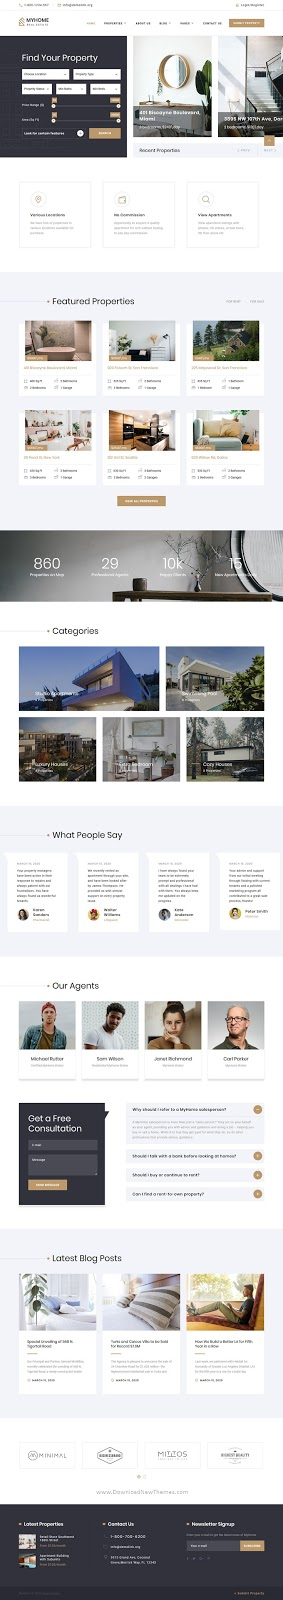 MyHome - Residential Real Estate Agency Website Design